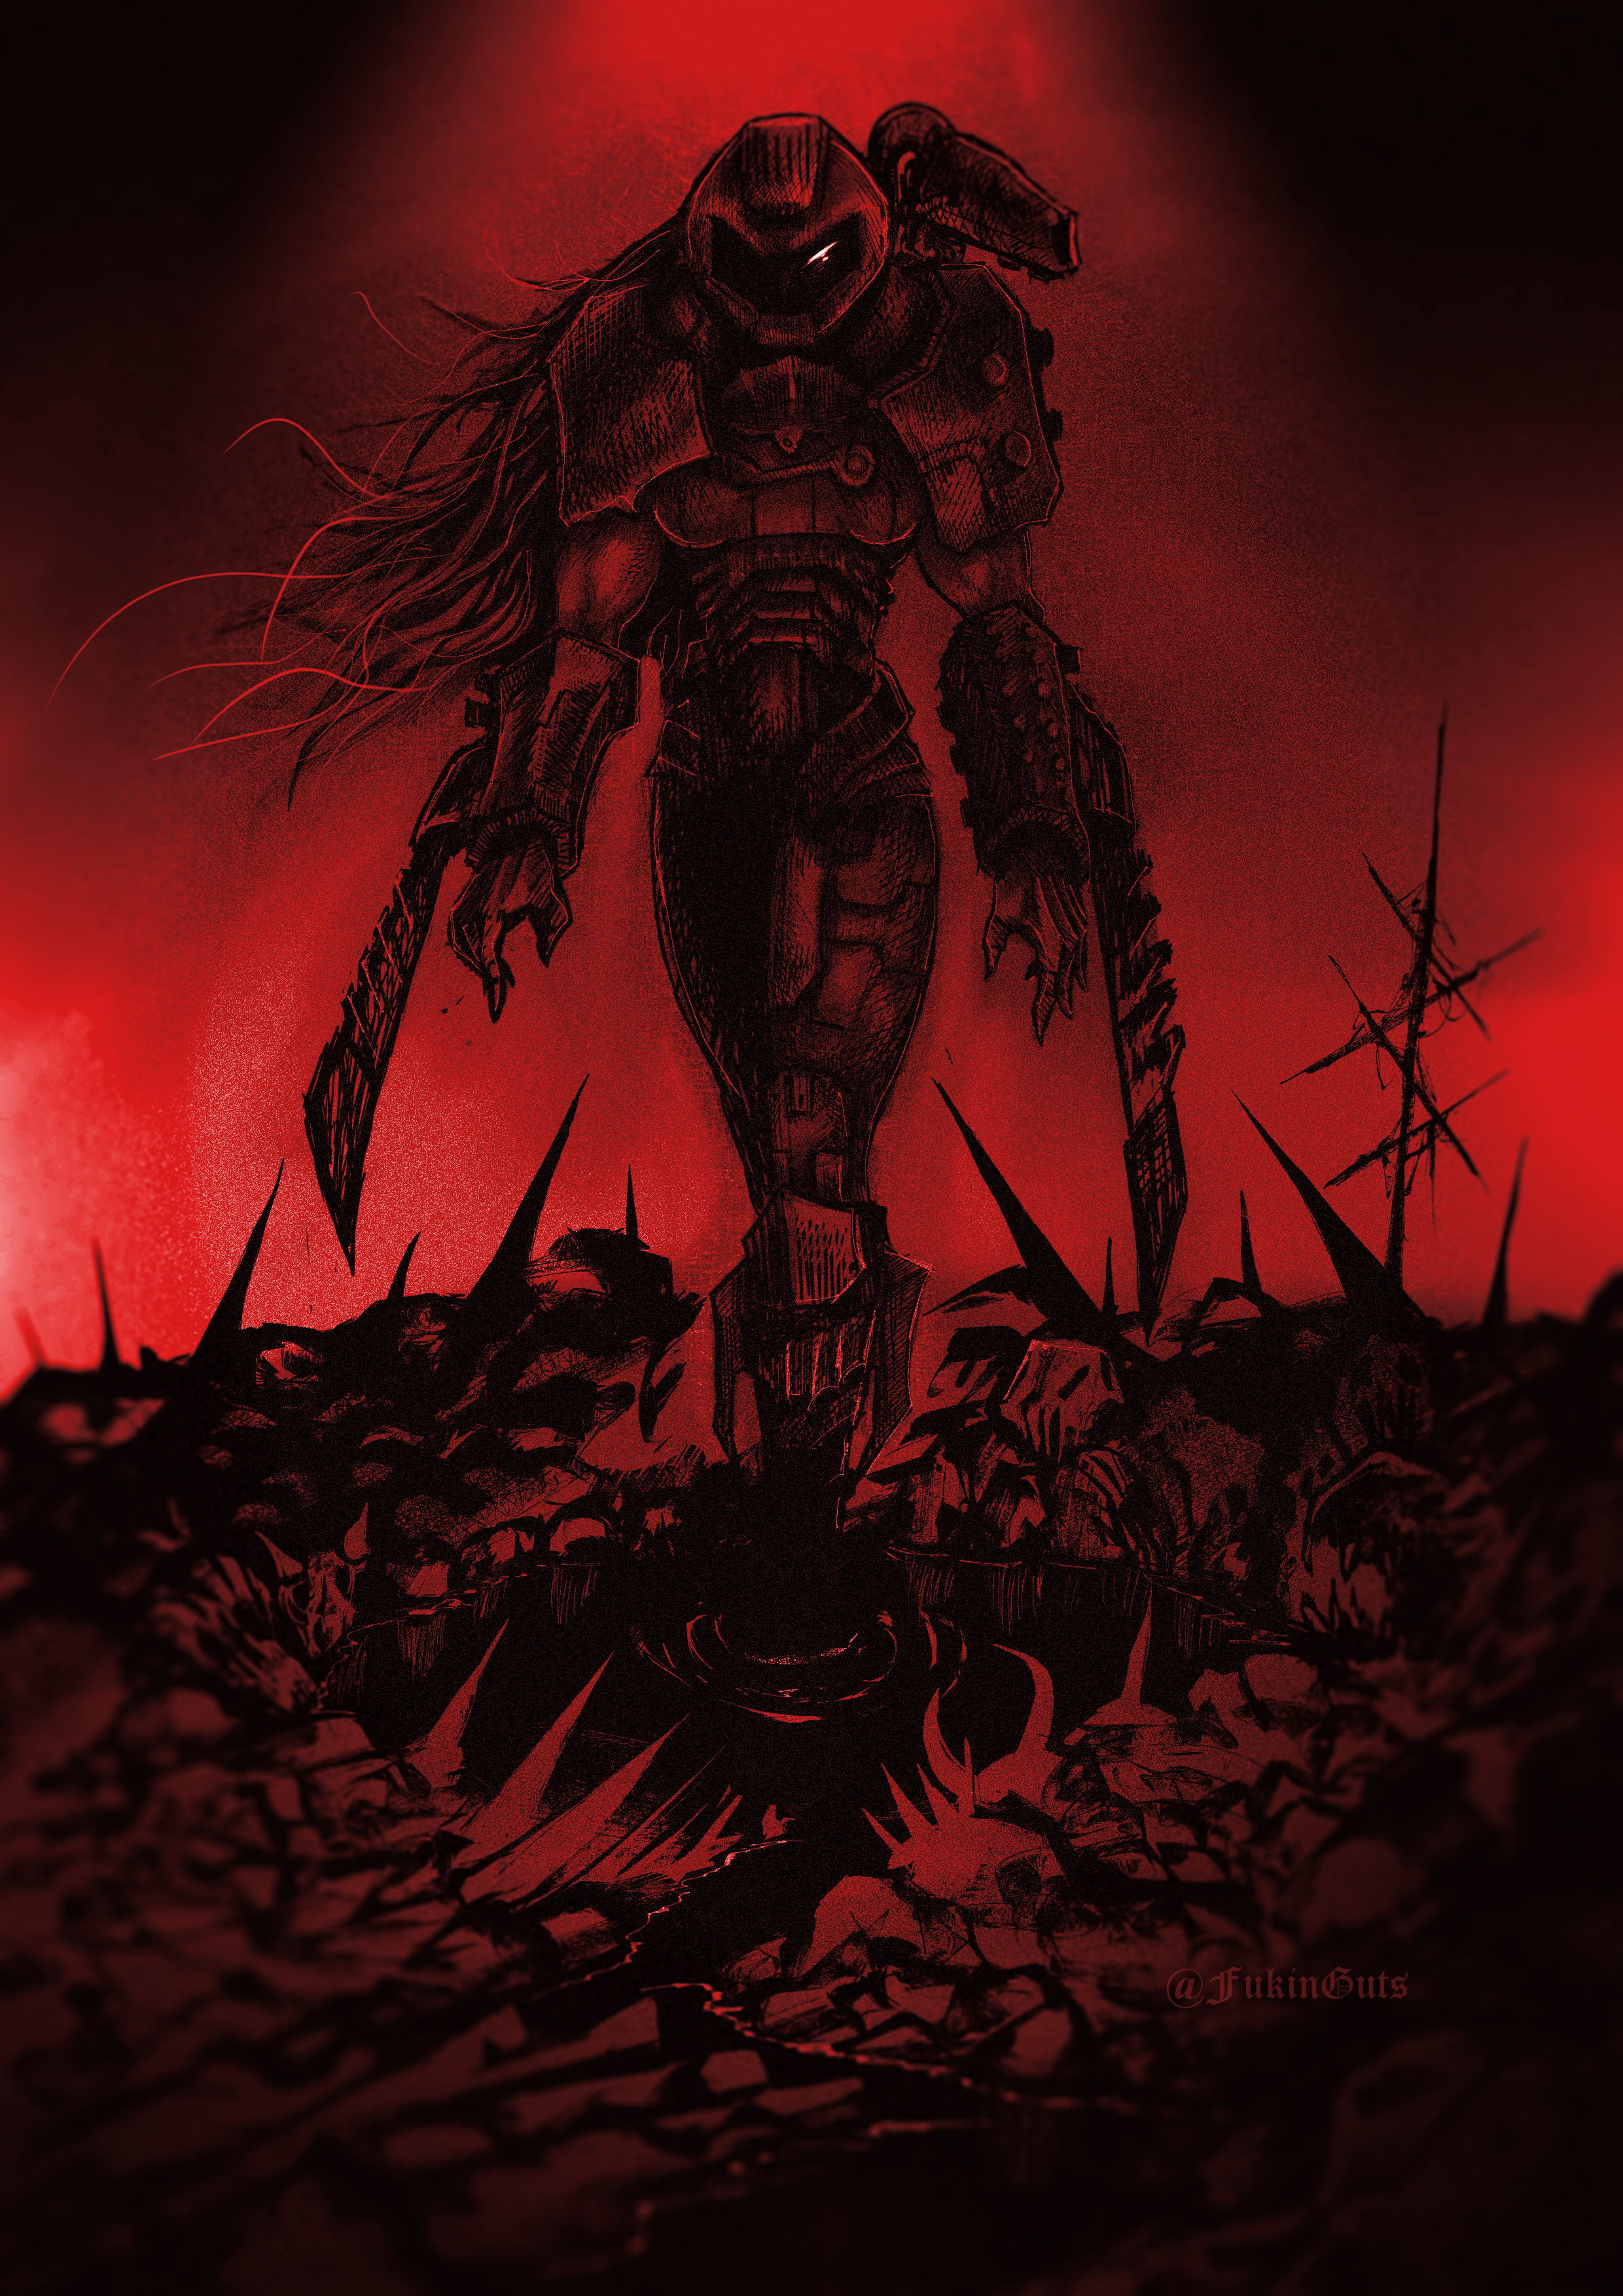 Doomslayer Ess By Fukinguts On Newgrounds